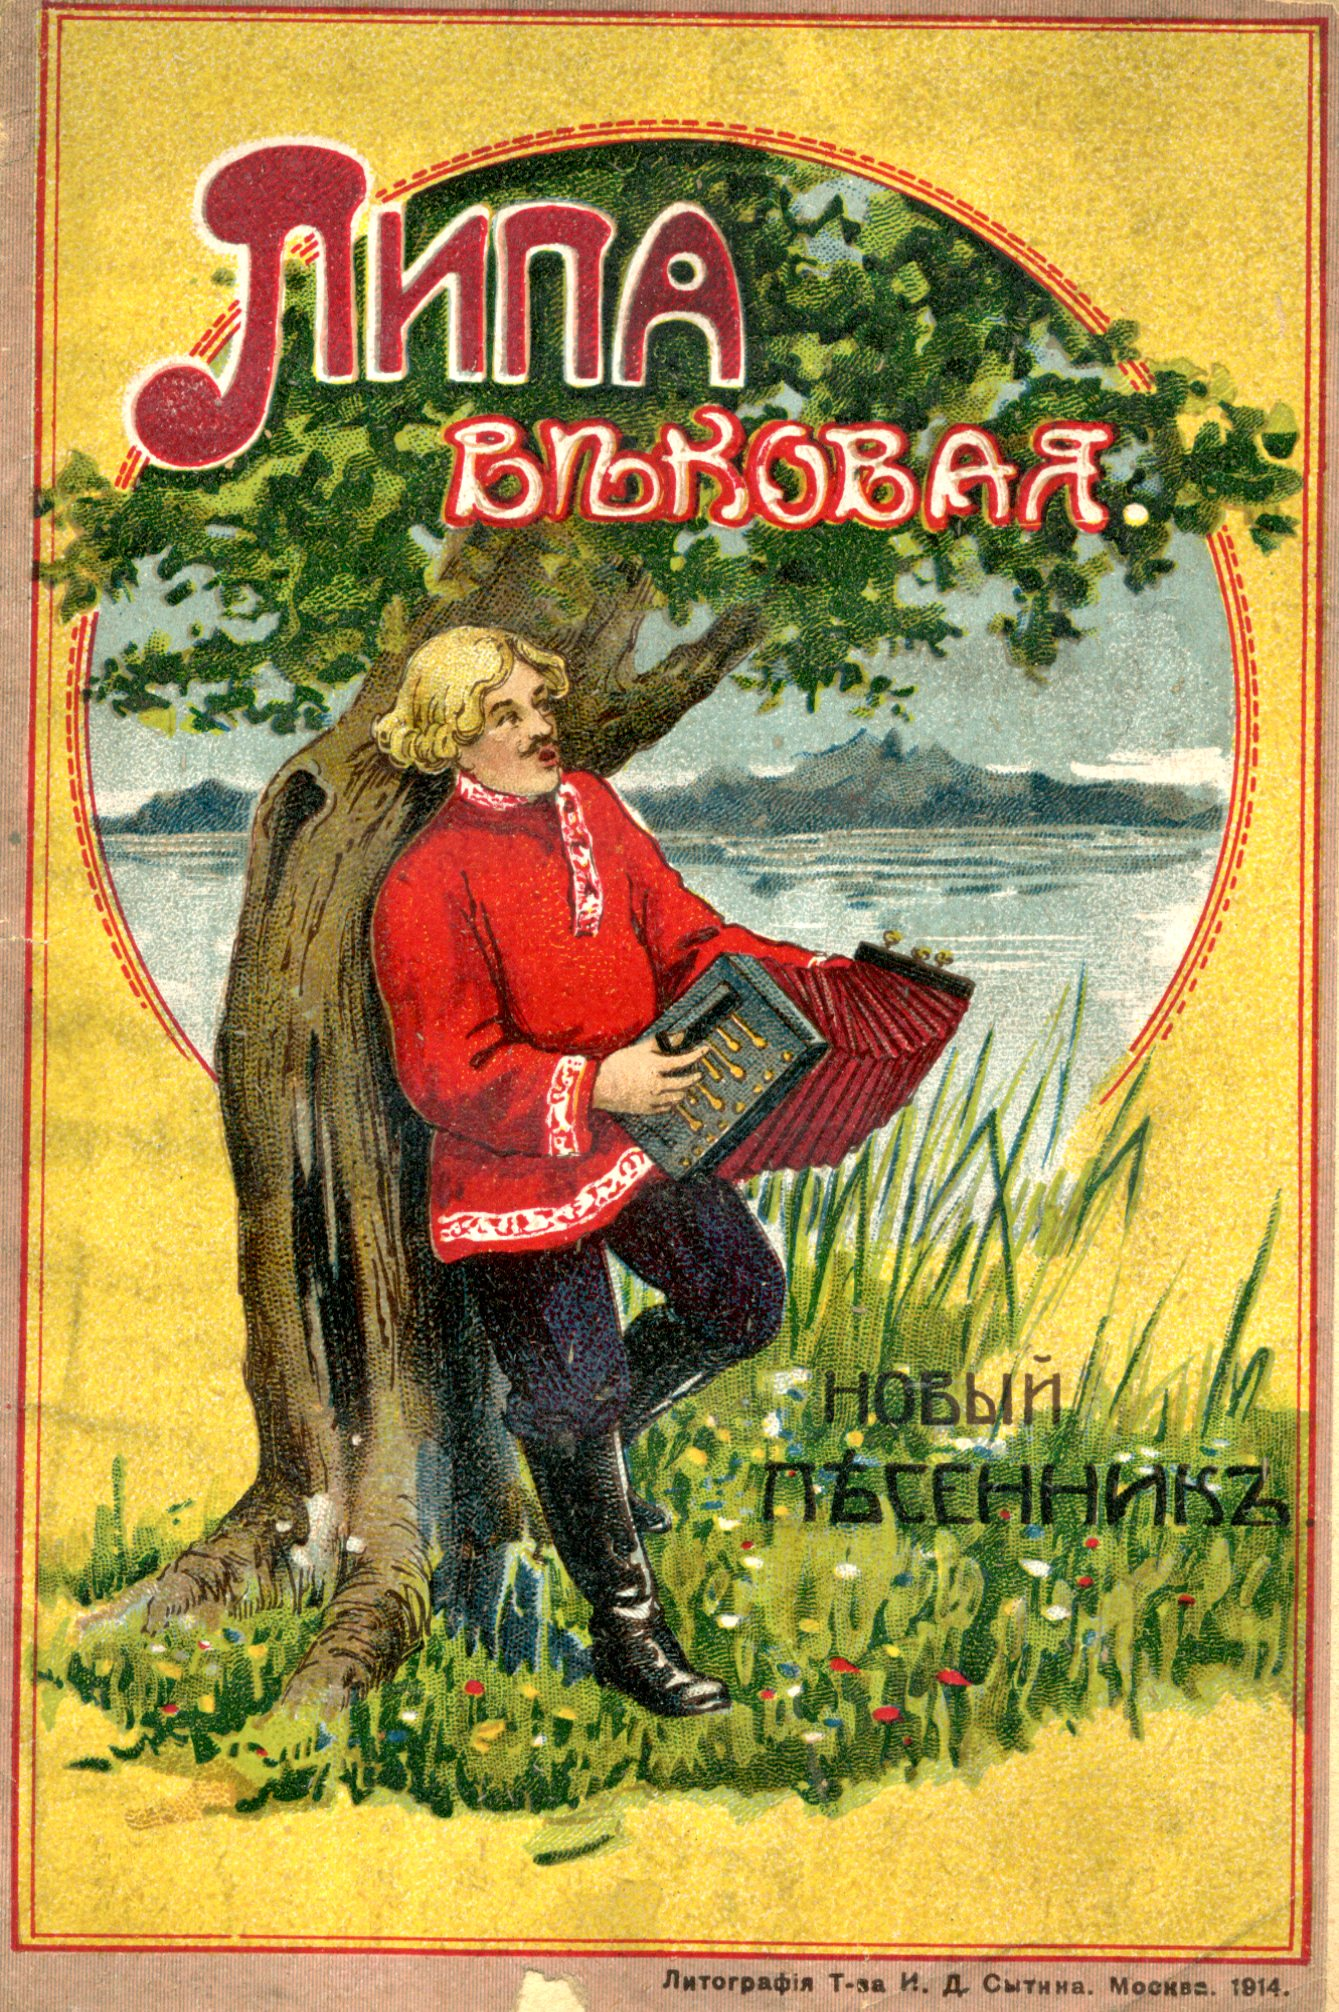 Cover of Russian pamphlet from collection depicts a man playing accordion